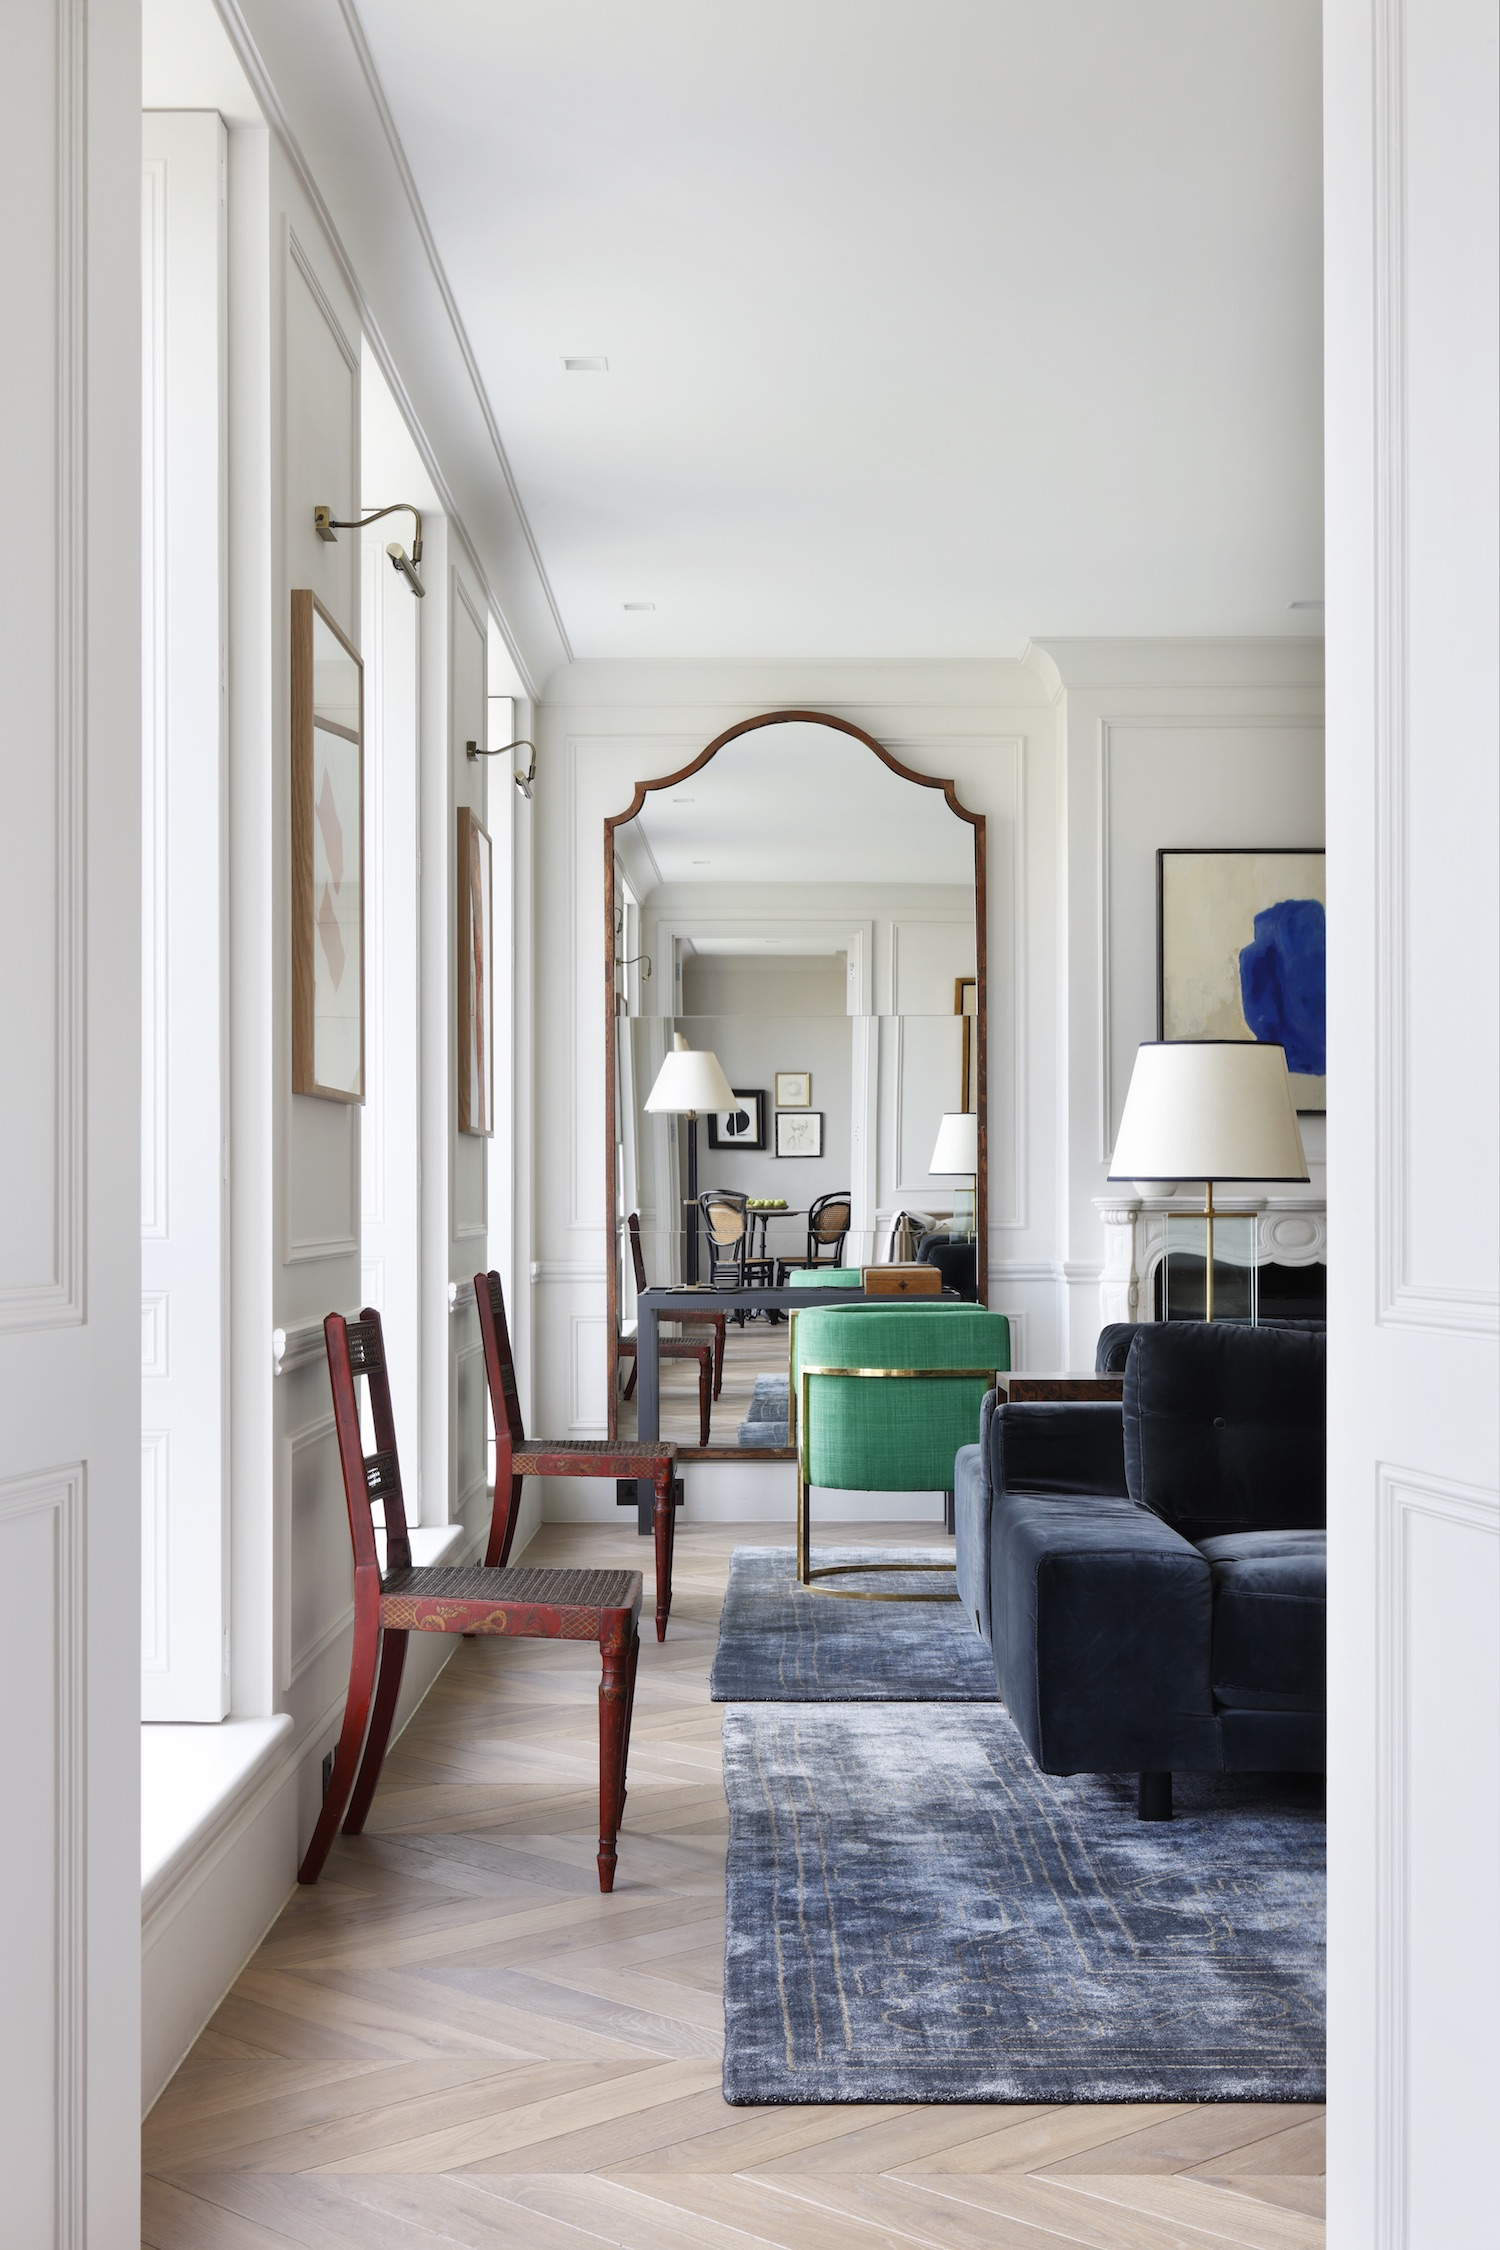 Explore A Notting Hill Penthouse With Elegant Parisian Inspired Interiors